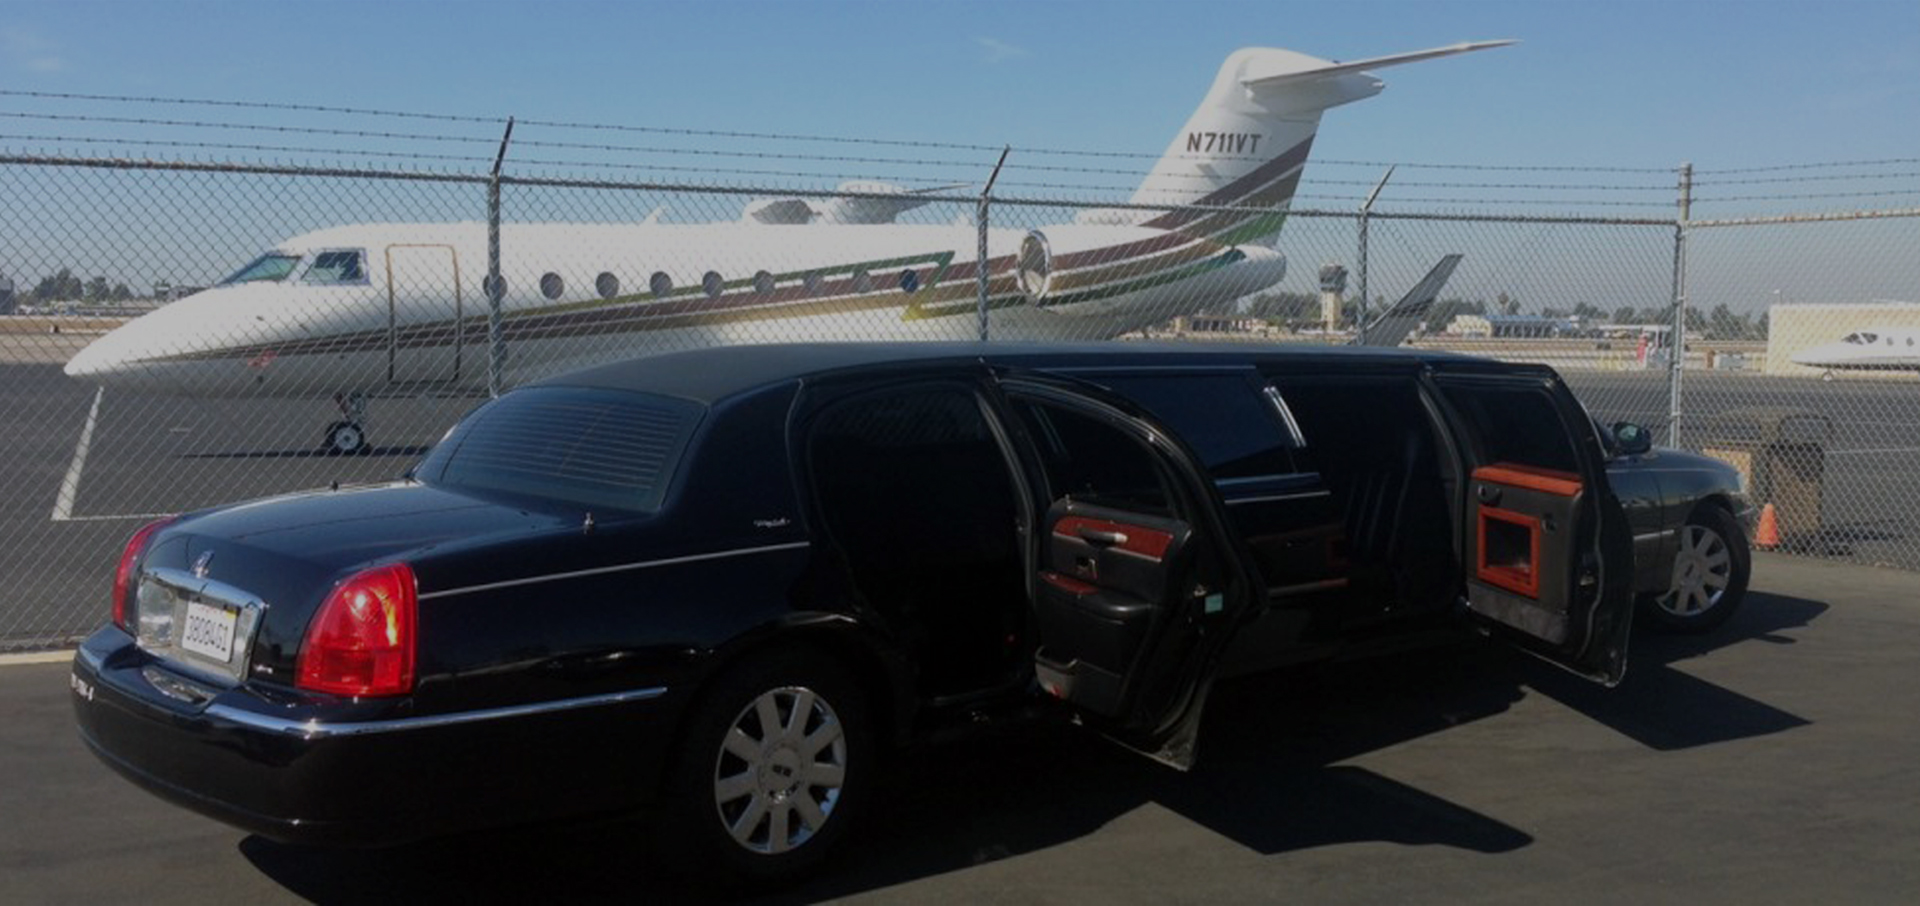 airport-pick-and-drop-limo-services